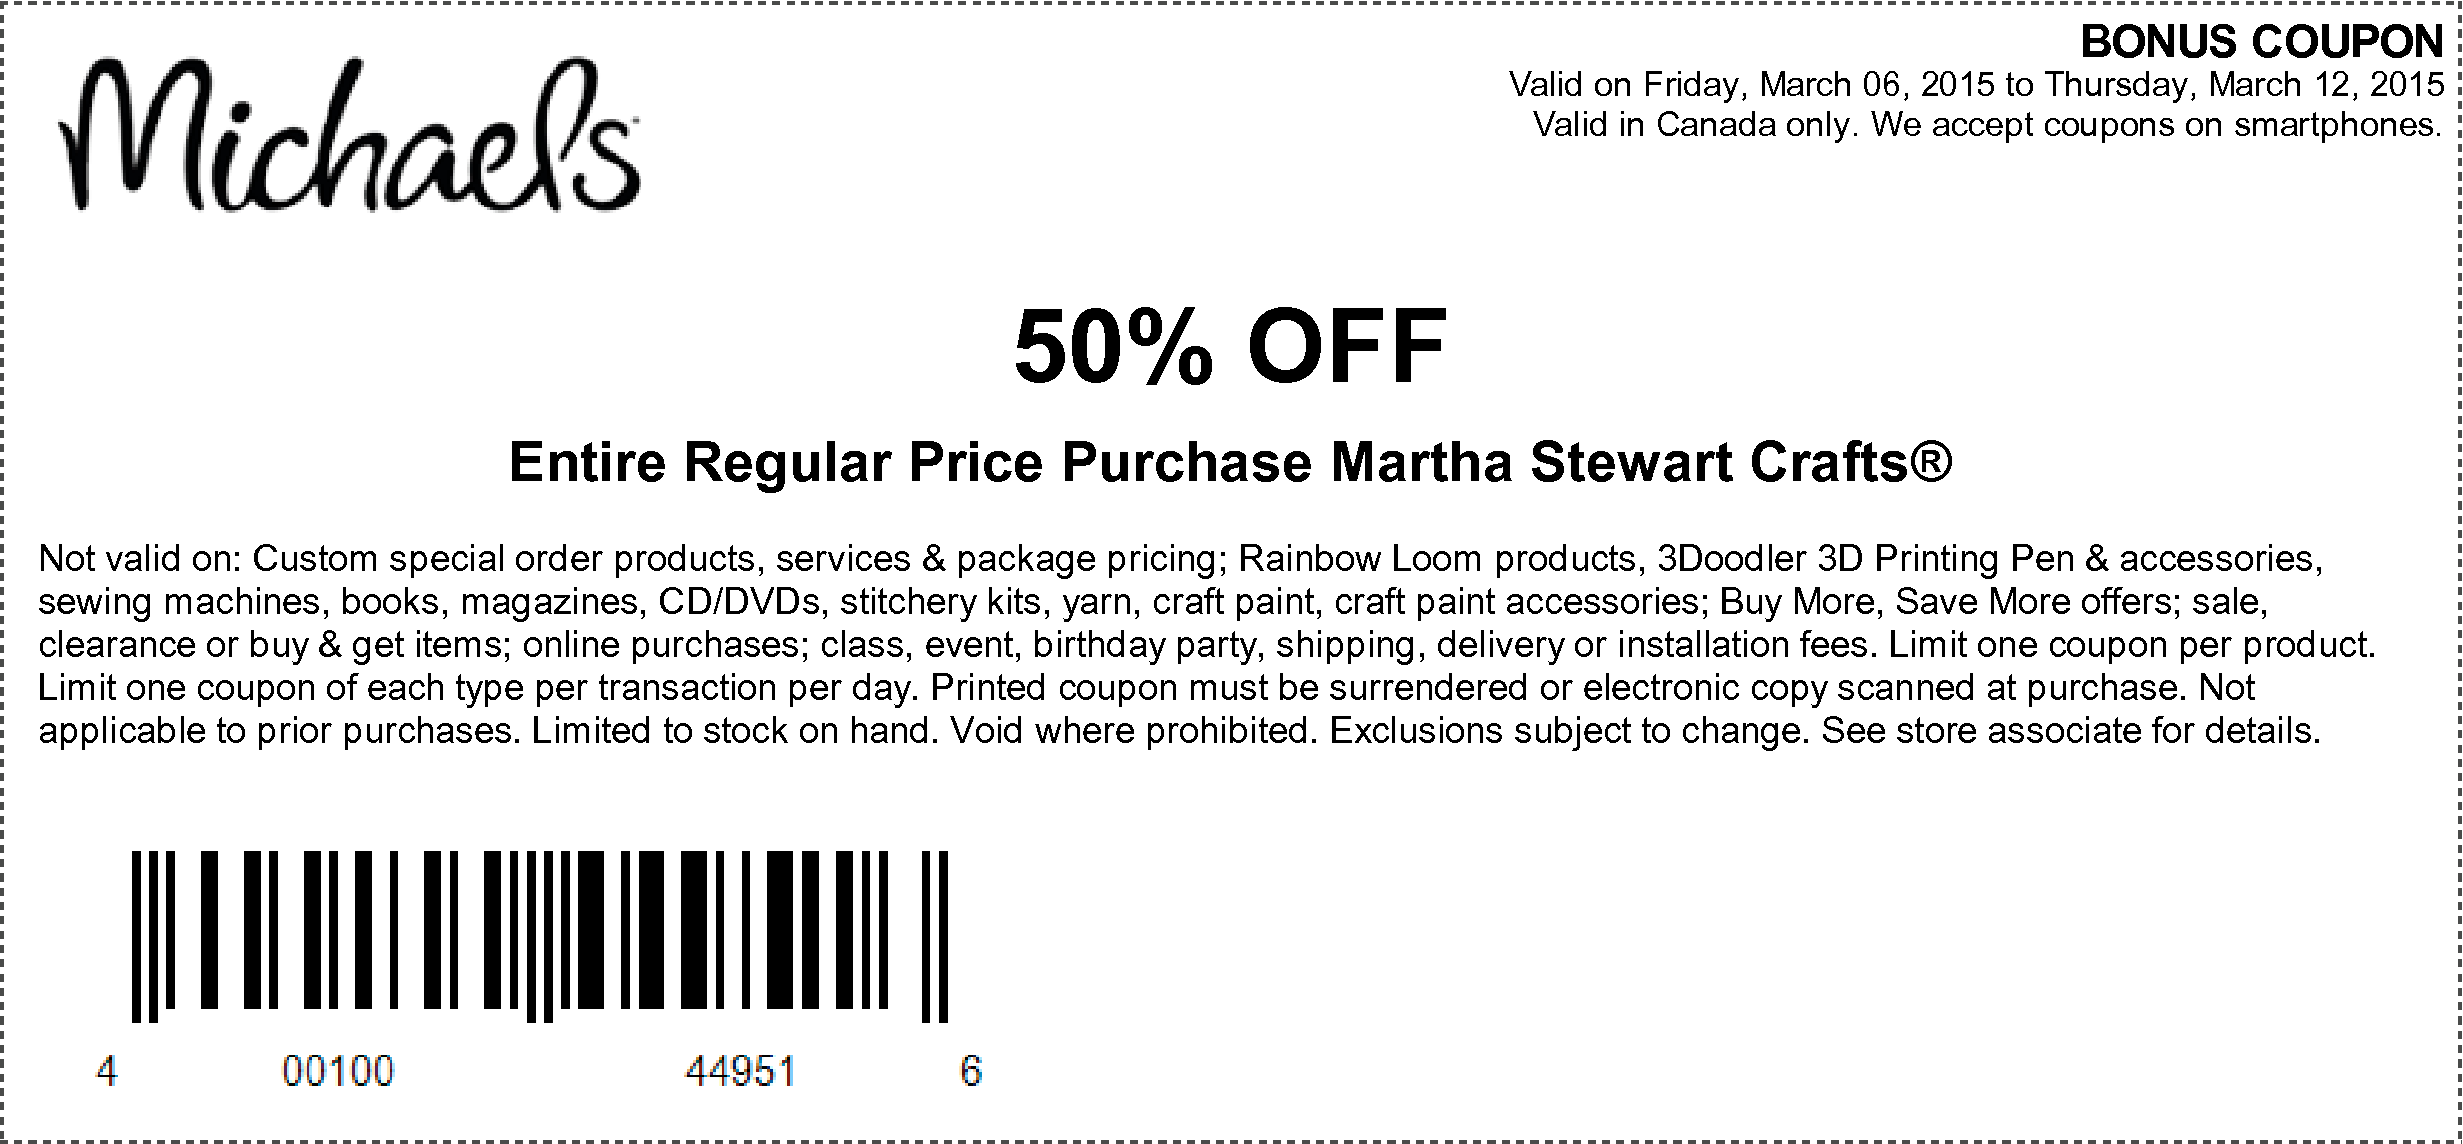 Michaels coupon off sale price